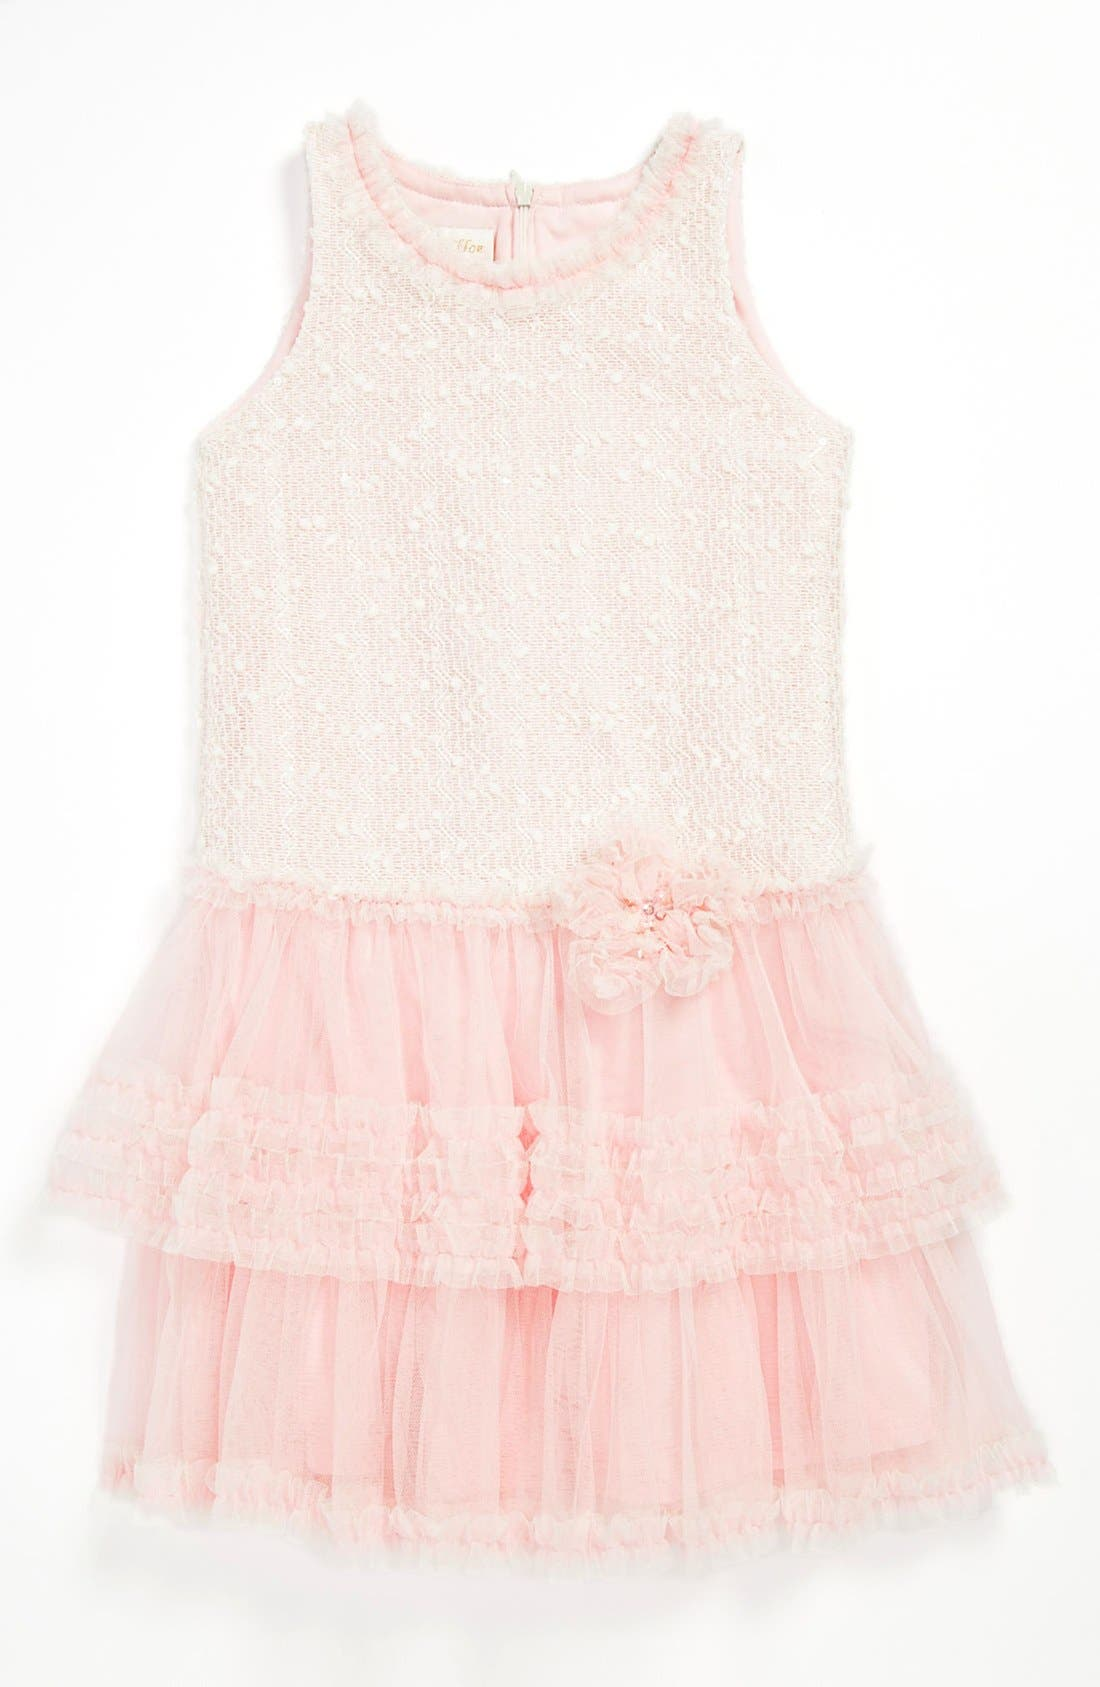 Alternate Image 1 Selected - Isobella & Chloe Drop Waist Dress (Little Girls)